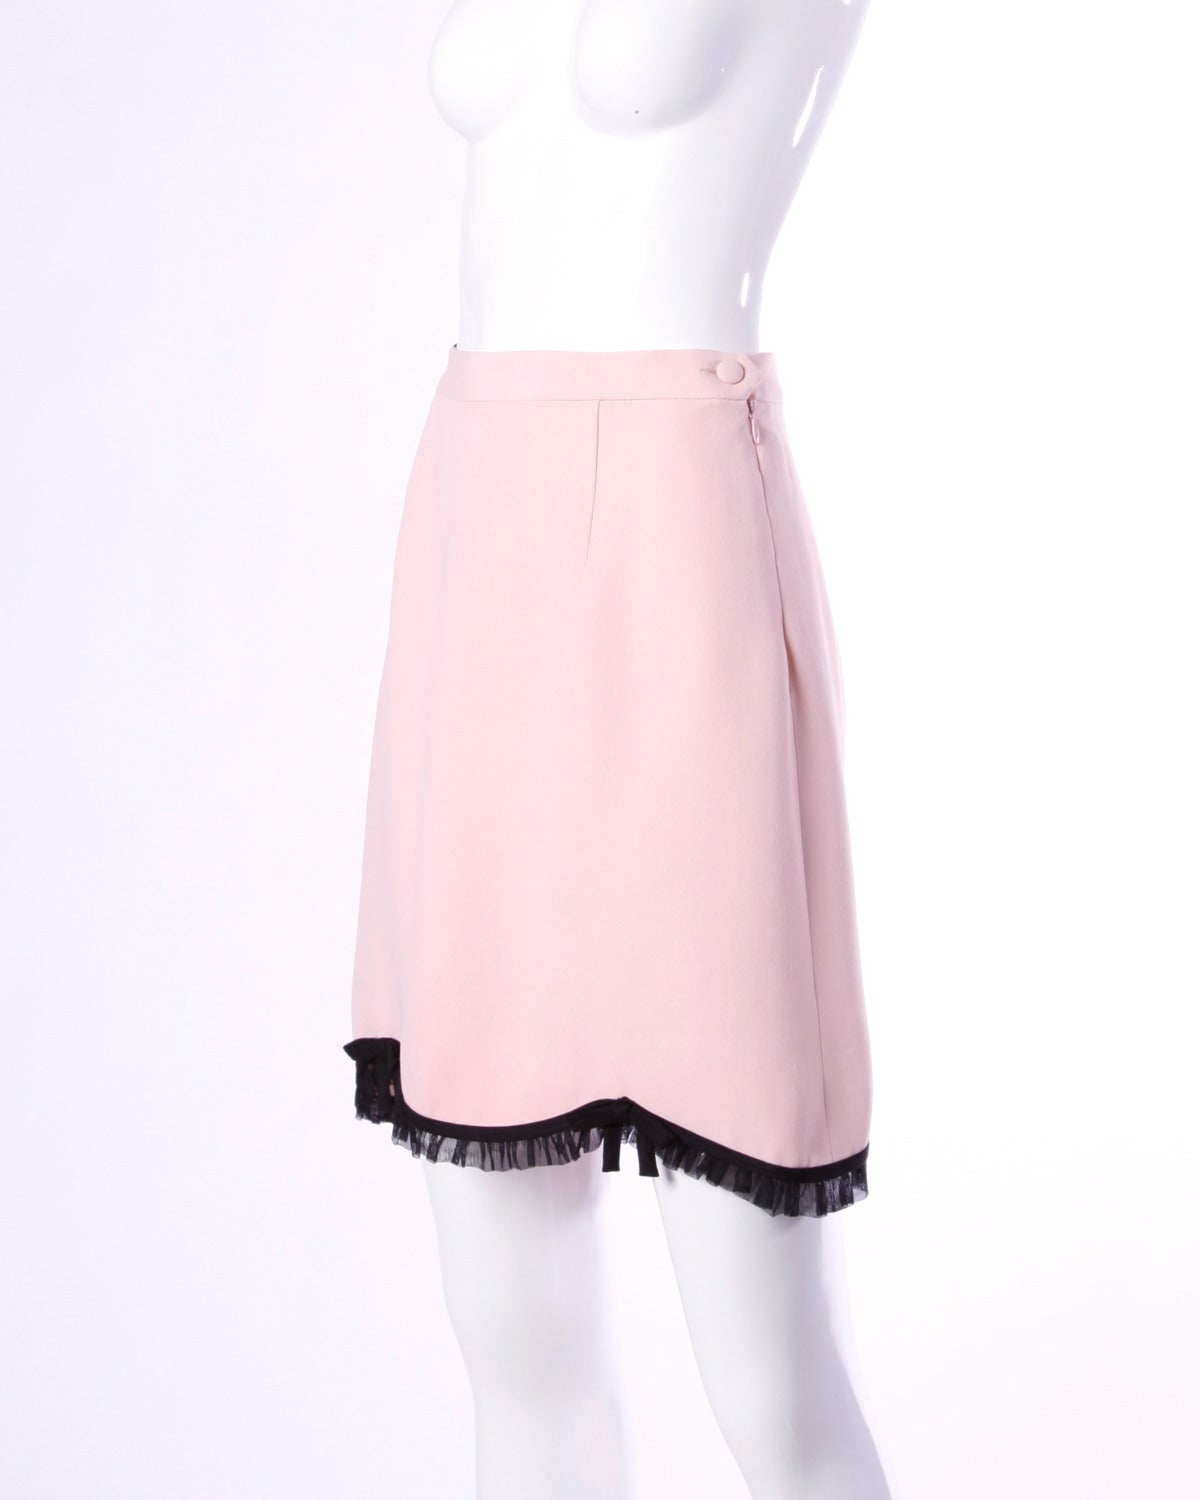 Moschino Vintage 1990s 90s Pink + Black Ruffle Scalloped Skirt 4